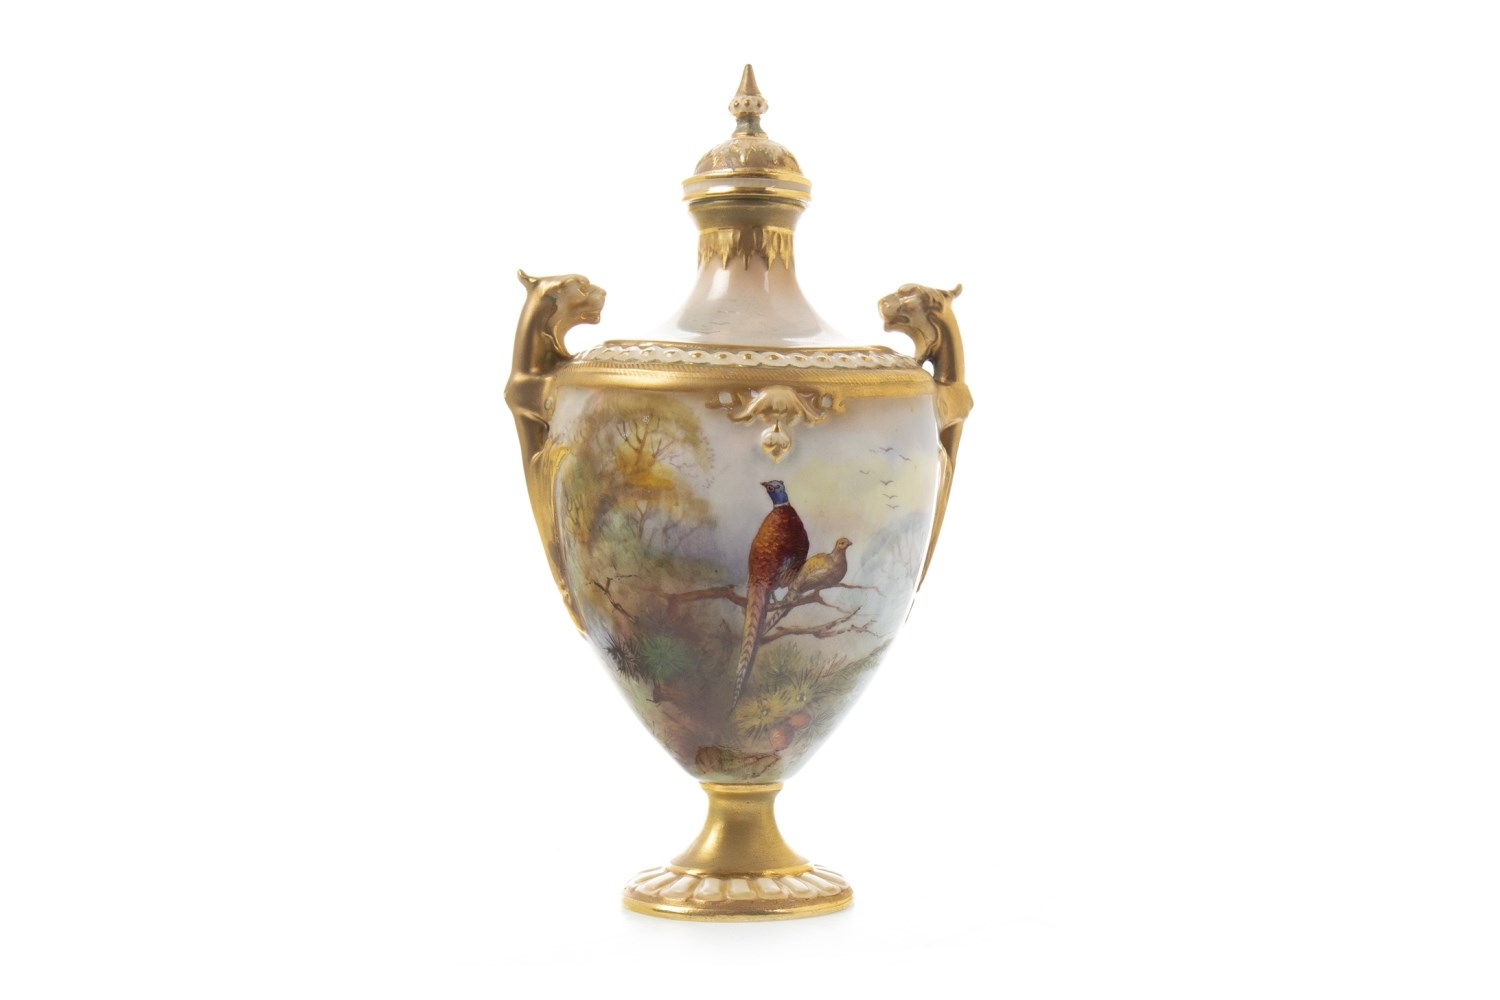 Lot 1275 - A ROYAL WORCESTER VASE AND COVER BY R AUSTIN